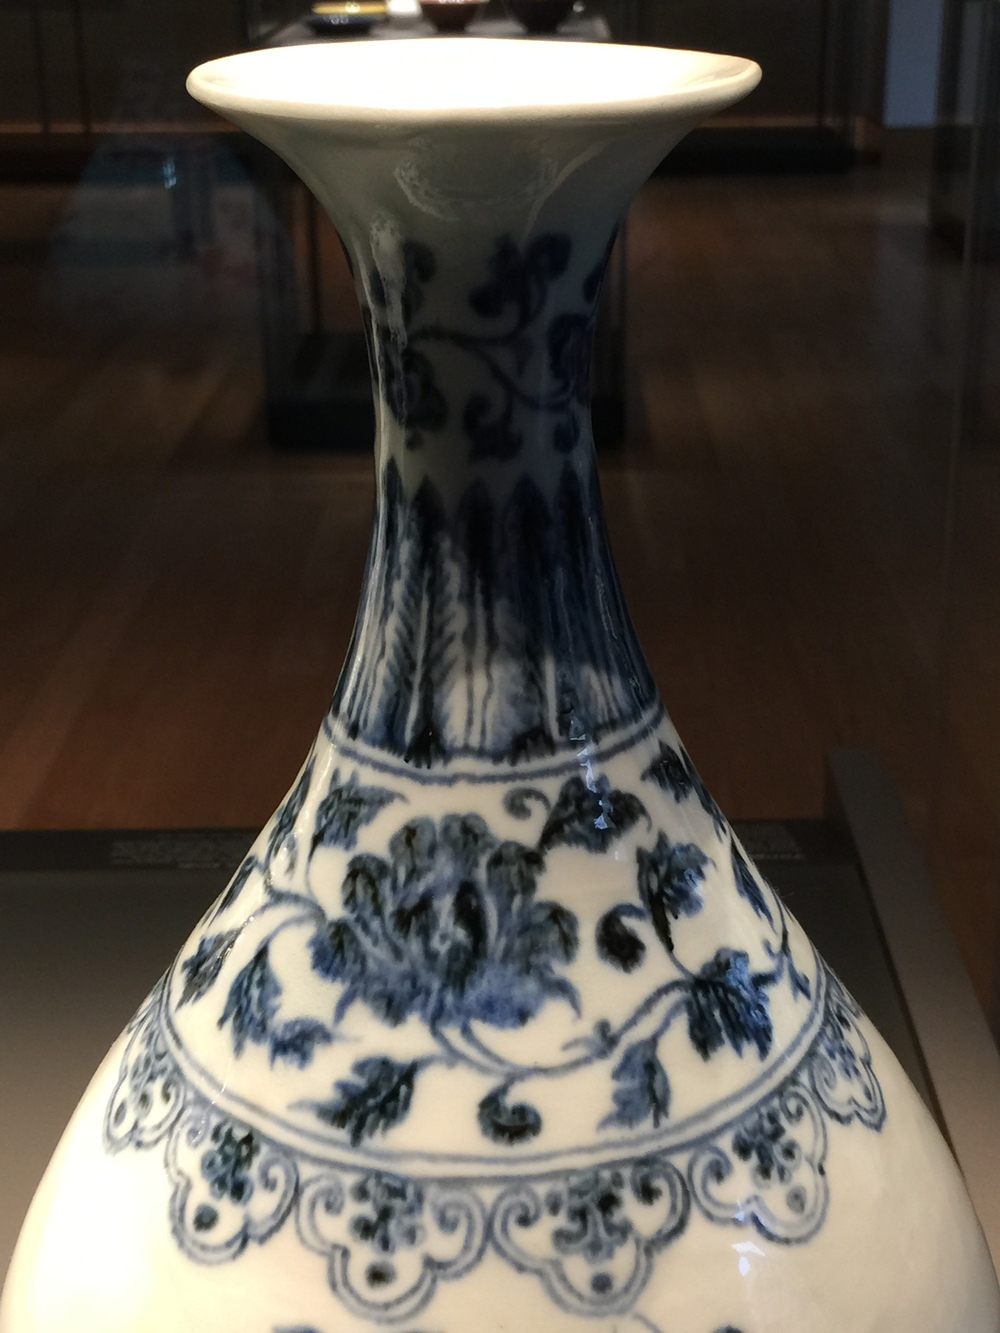 Chinese-Porcelain-British-Museum-Percival-David-jessewaugh.com-37.jpg